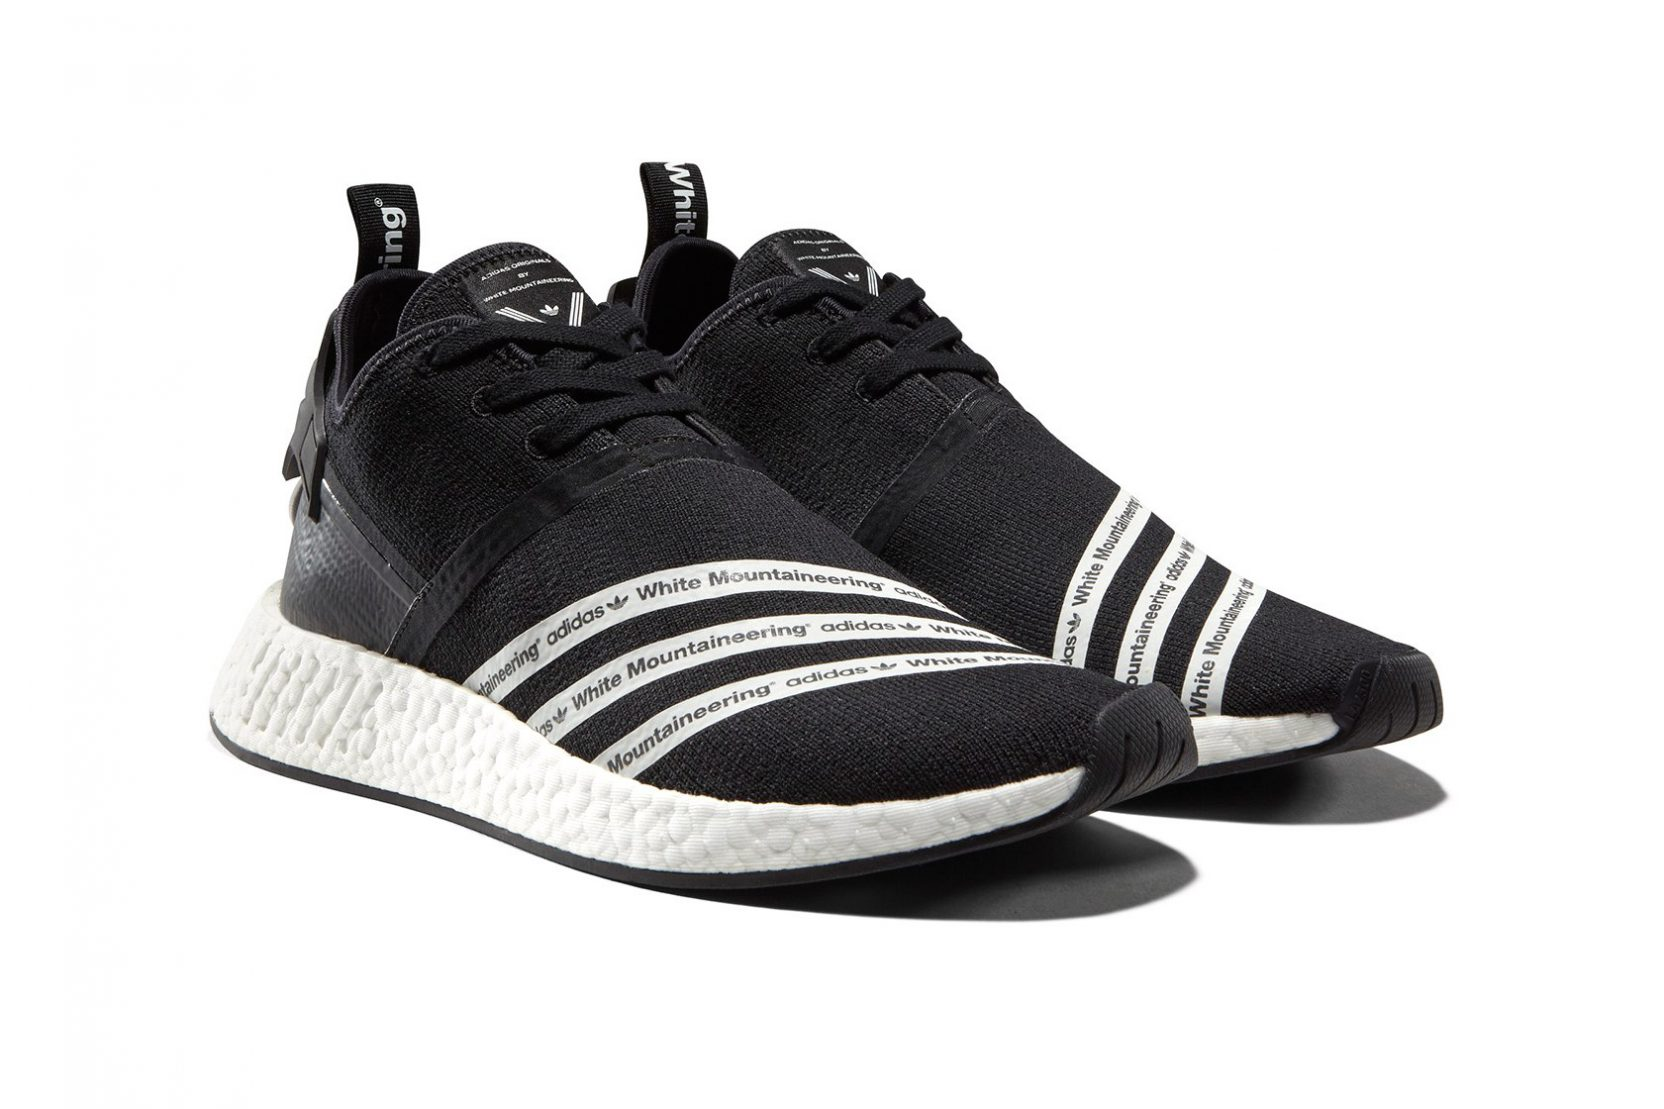 White Mountaineering x Adidas Spring Collection 6